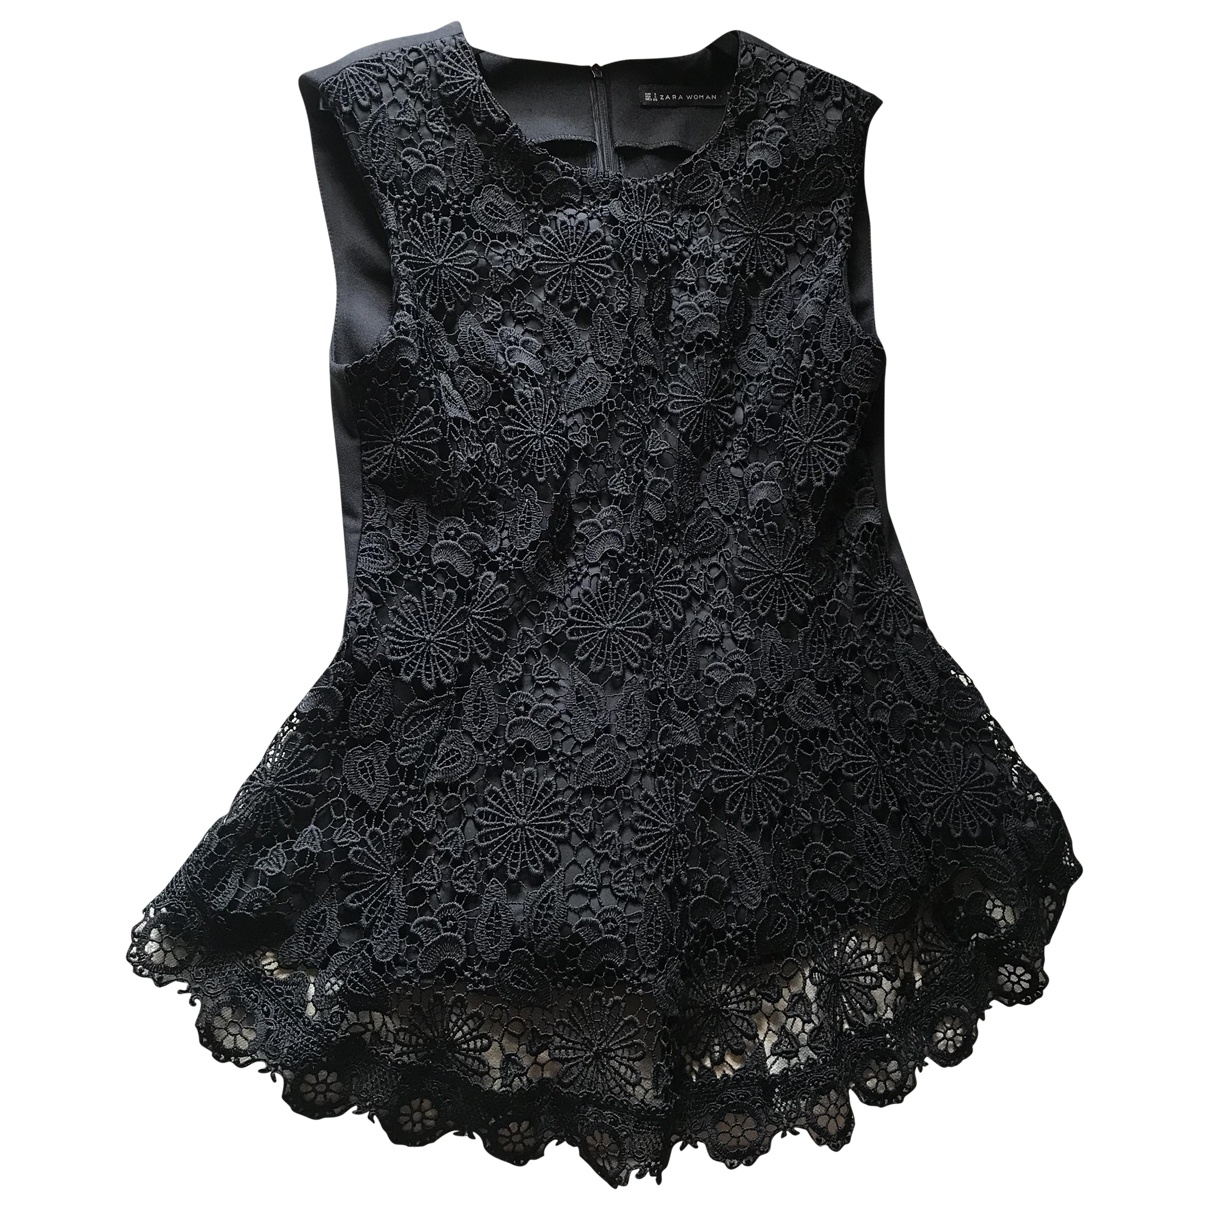 Zara \N Top in  Schwarz Polyester